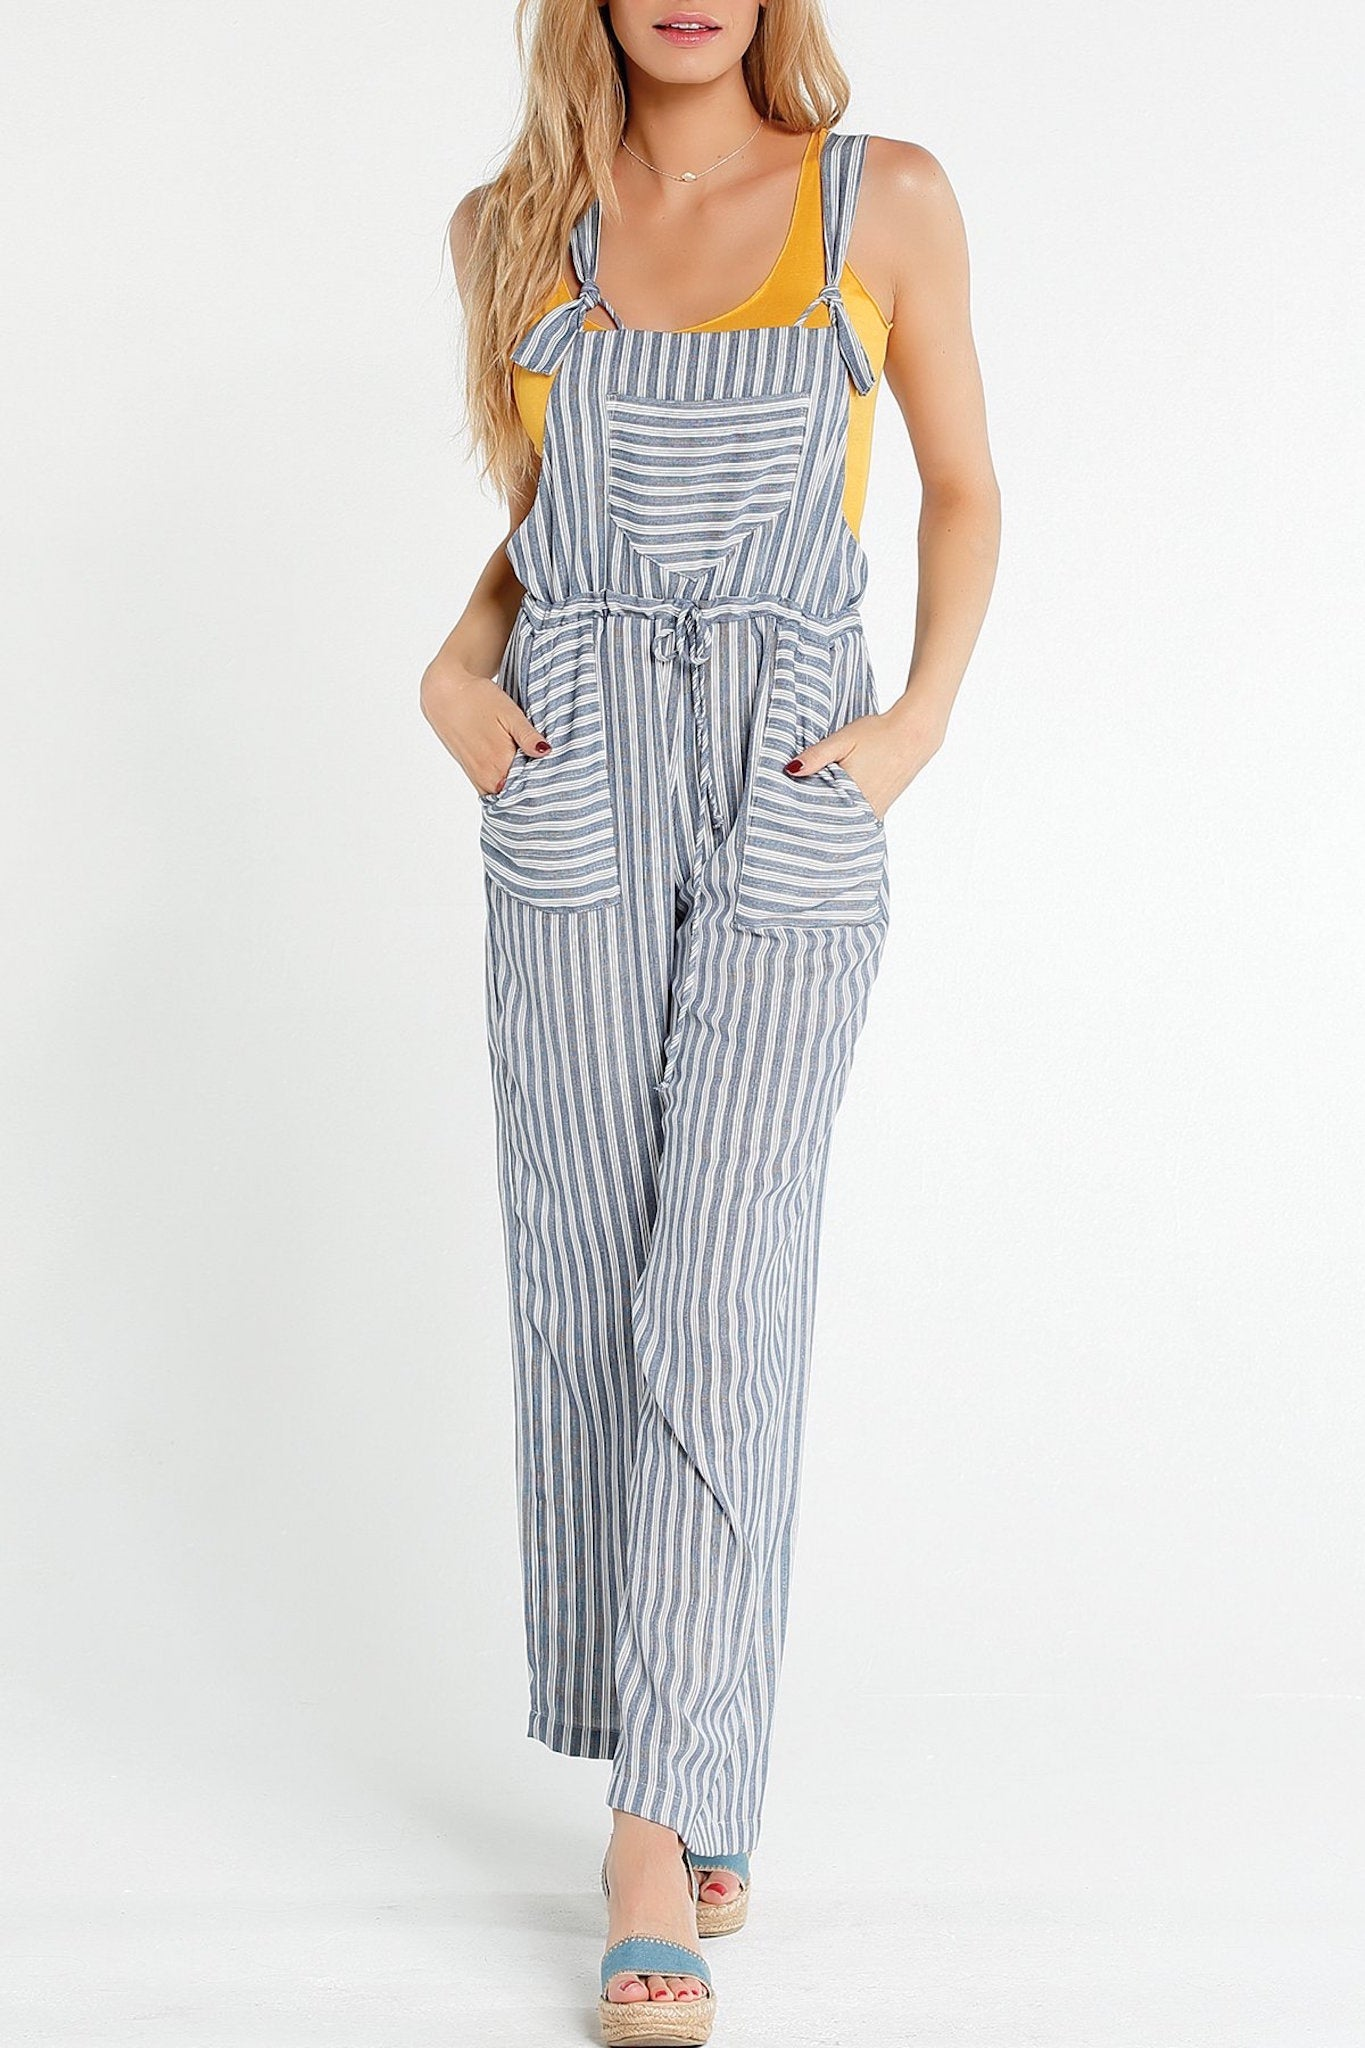 Lucy Love Portino Overall - Ella J Boutique